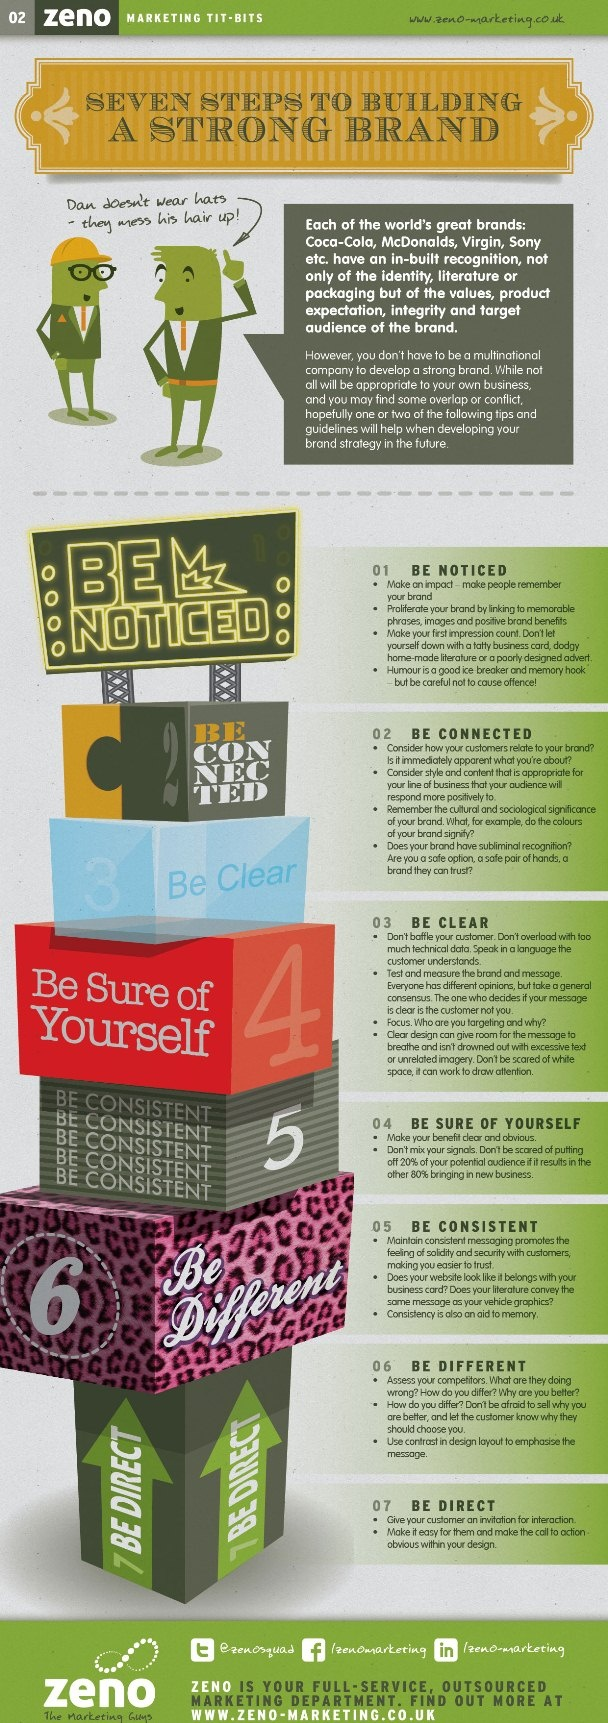 Infographic: Seven steps to building a strong brand  #smallbusiness #SMB #personalbranding